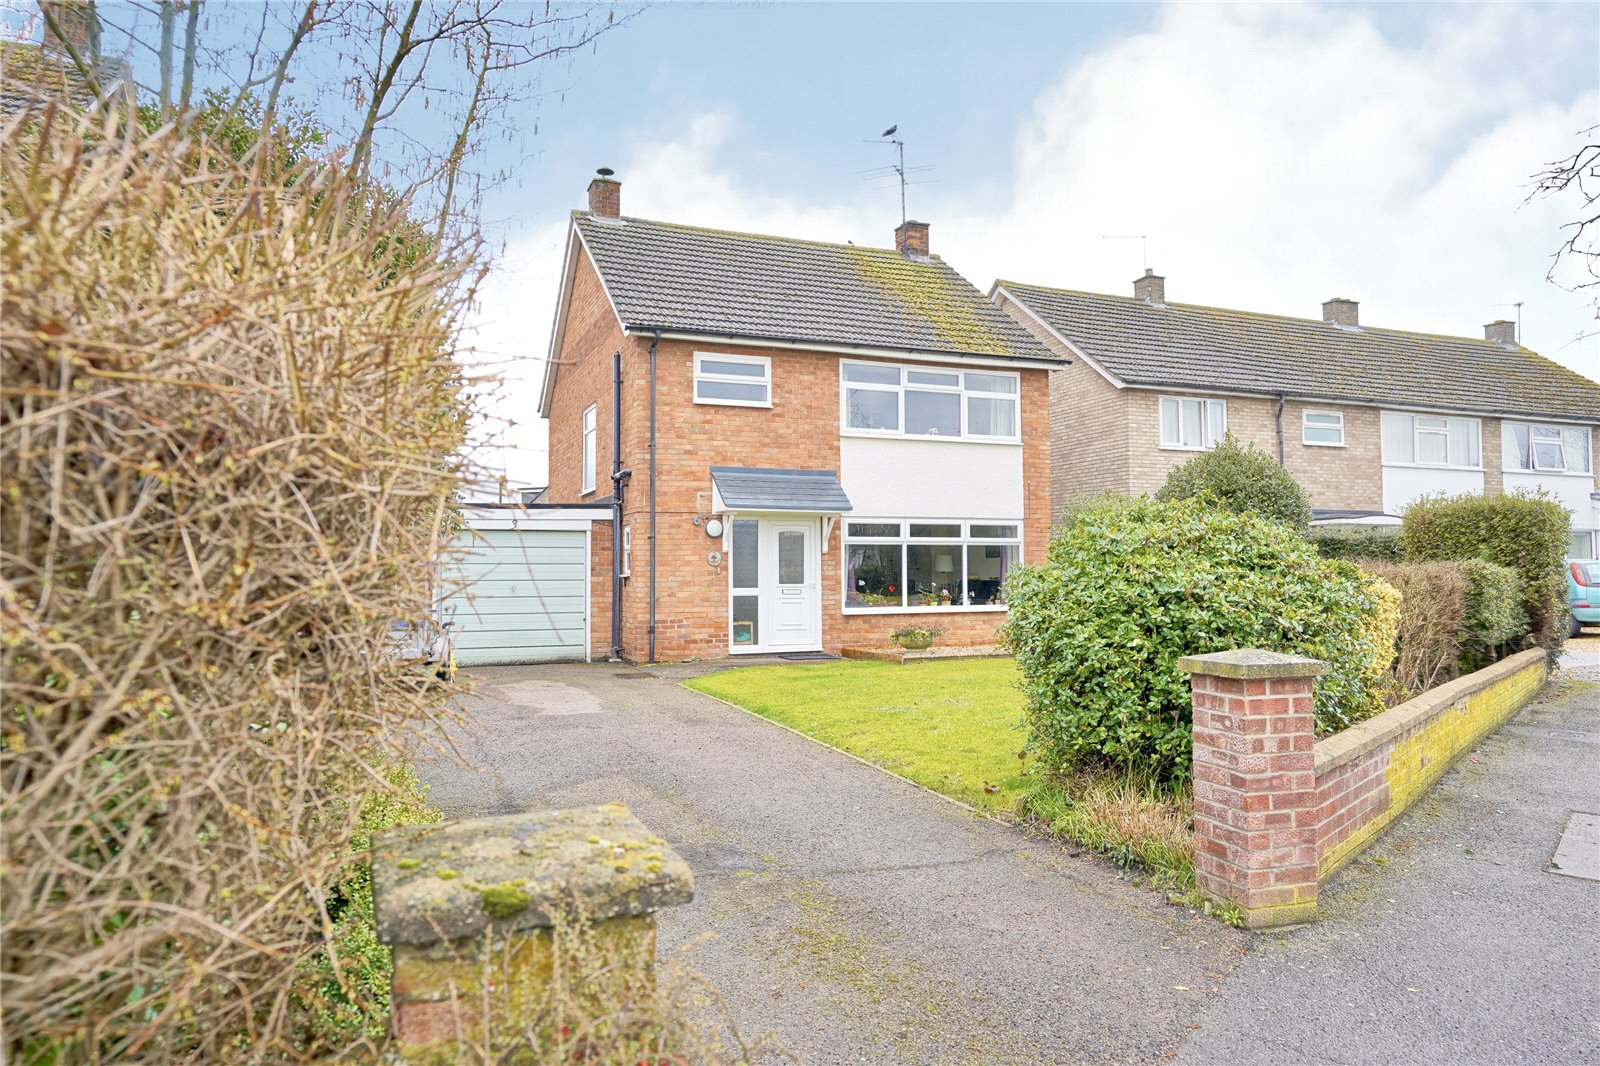 3 bed house for sale in St. Ives, PE27 6UD  - Property Image 1